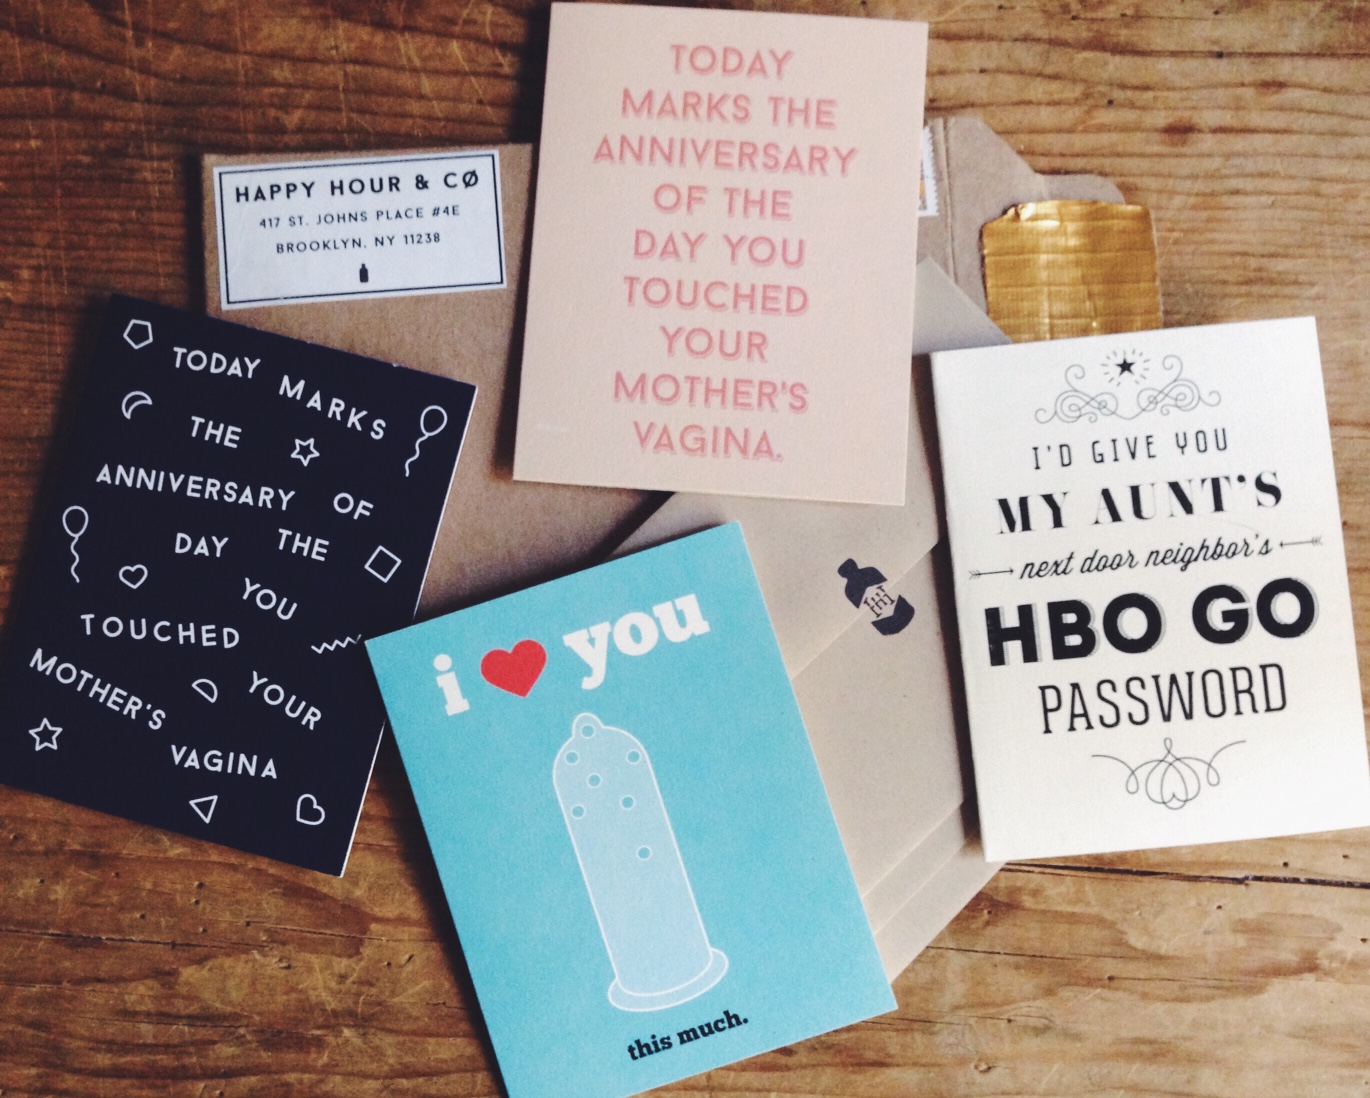 cards from Happy Hour & Co.